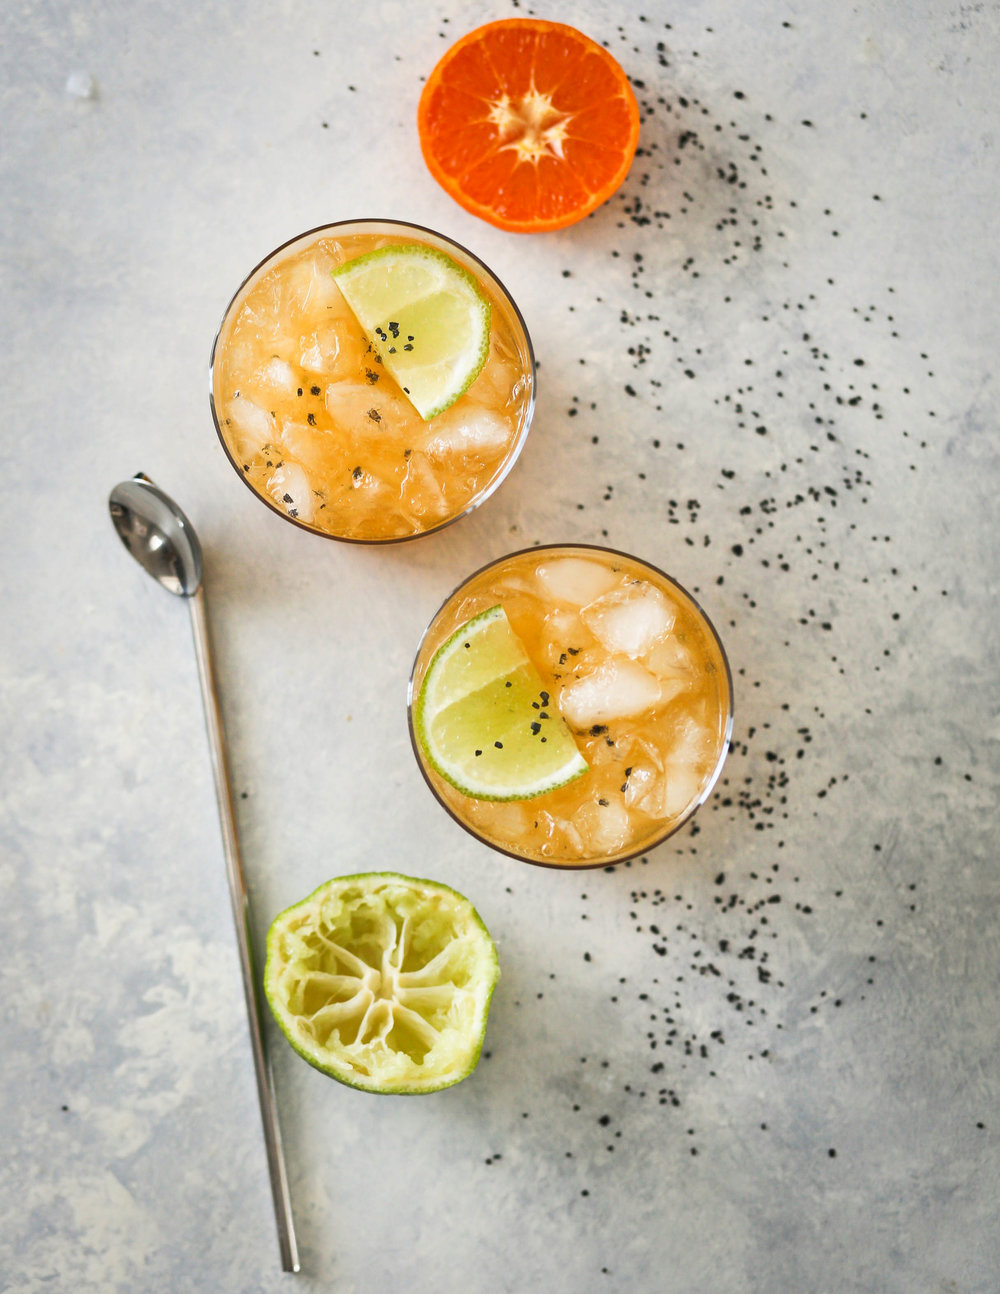 clementine margarita | Set the Table Blog